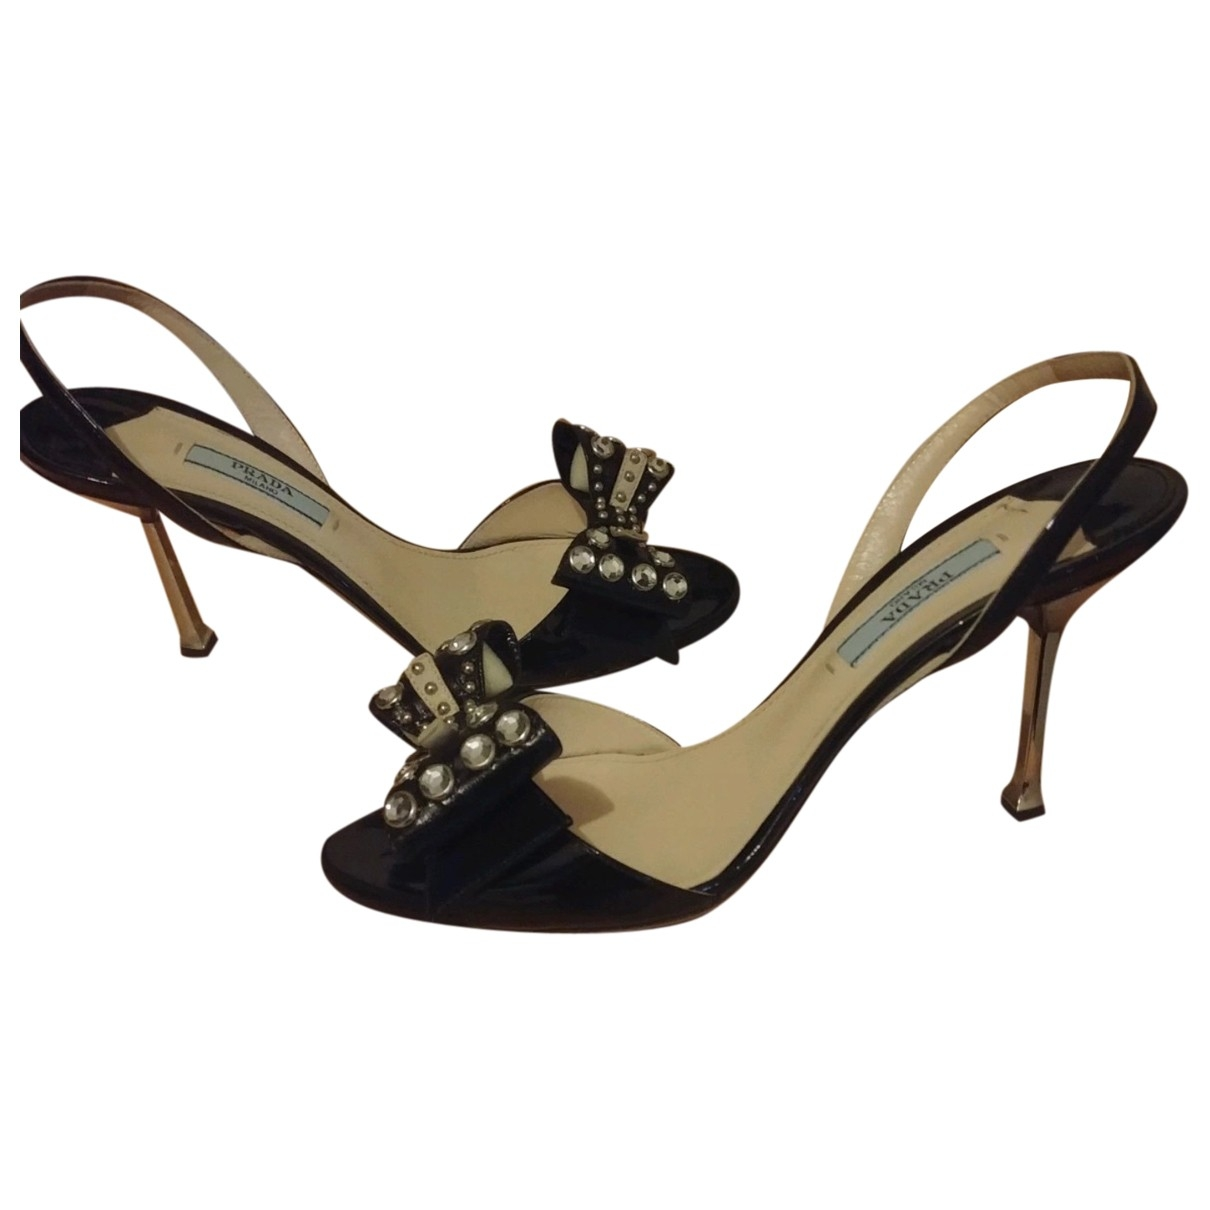 Prada \N Black Patent leather Sandals for Women 37 EU